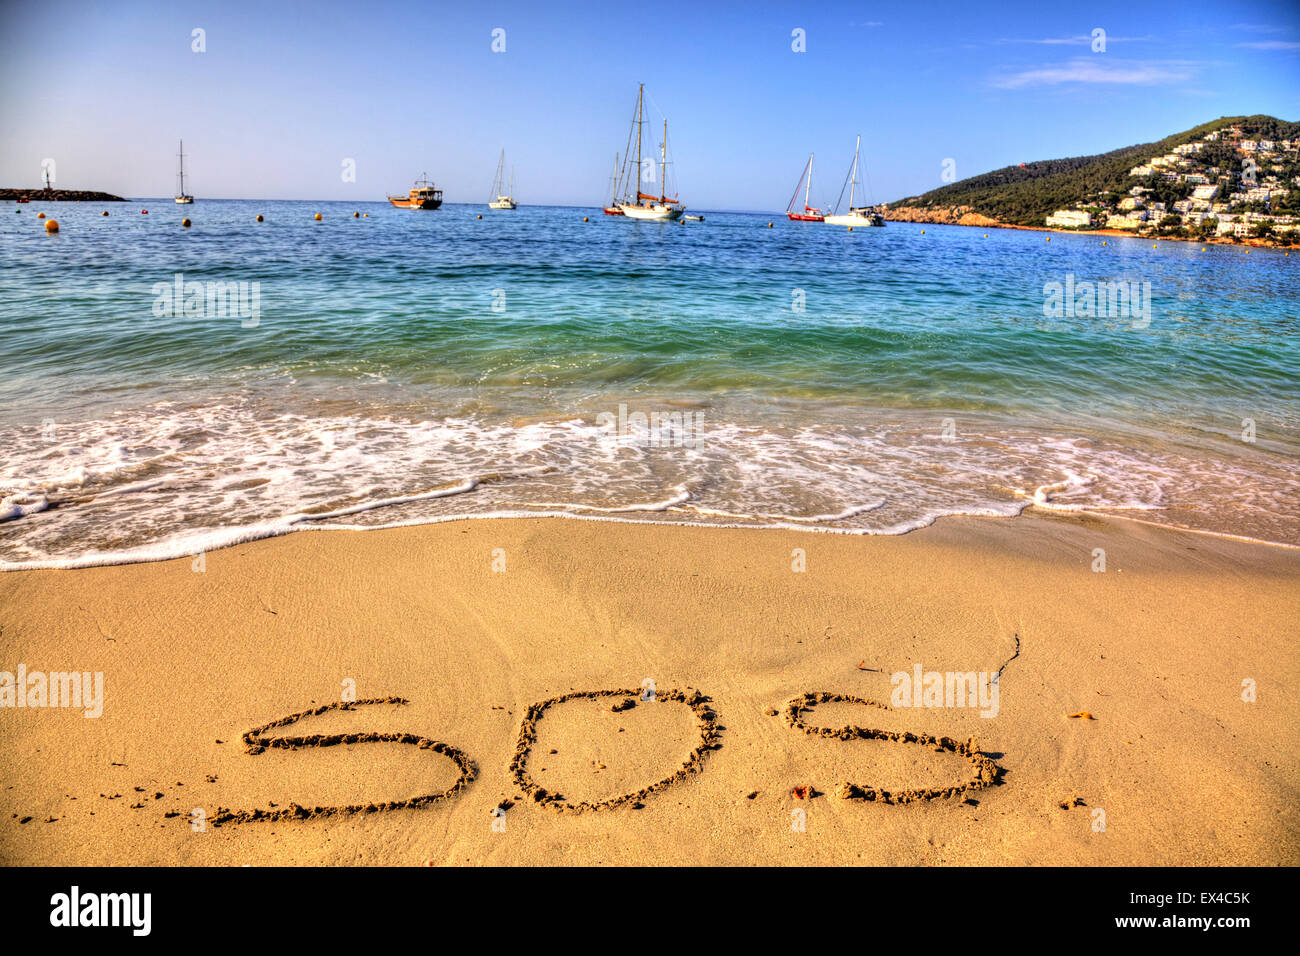 SOS save our souls rescue word in sand written on deserted beach island shipwrecked lost alone resort seas coast - Stock Image